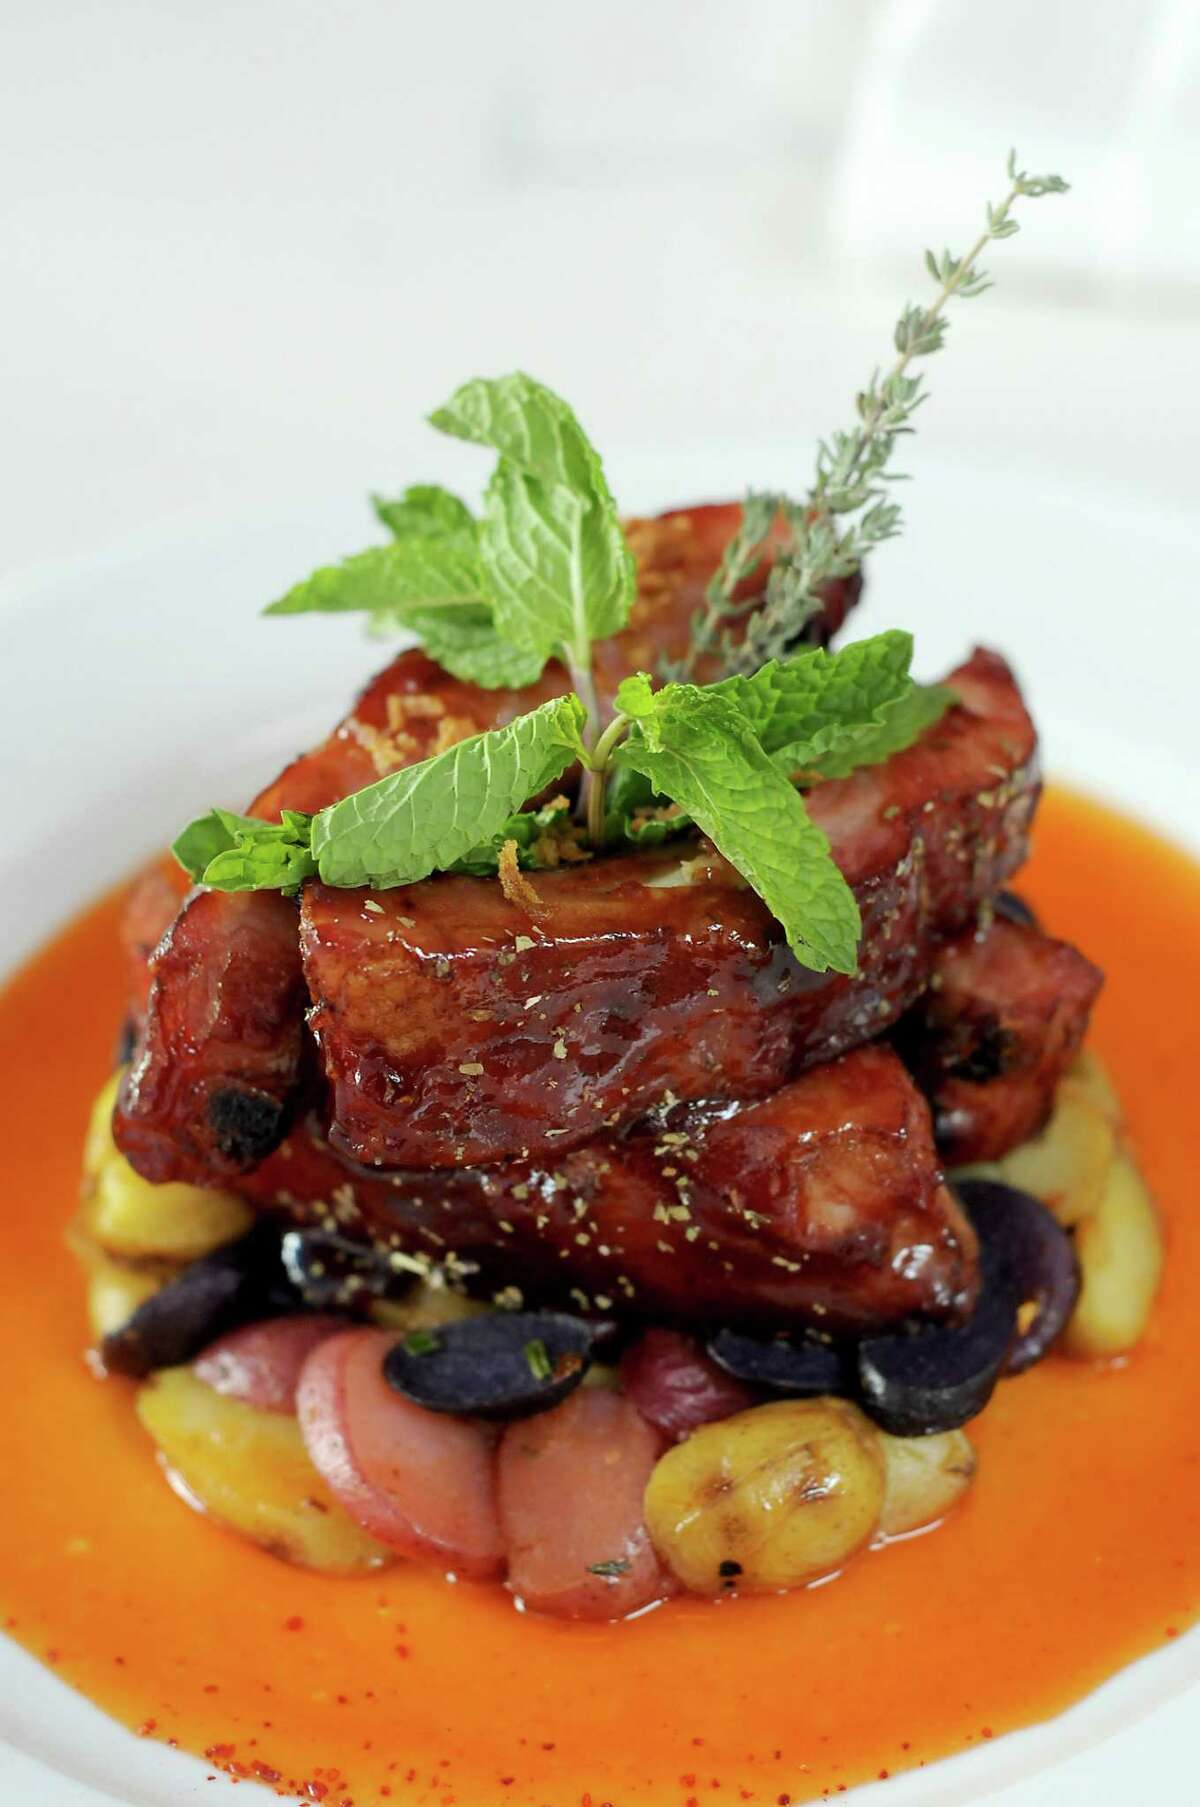 Roasted pork ribs with candied goose fat, sweet peppers sauce and roasted potatoes at La Villa Saint-Tropez restaurant in Montrose.